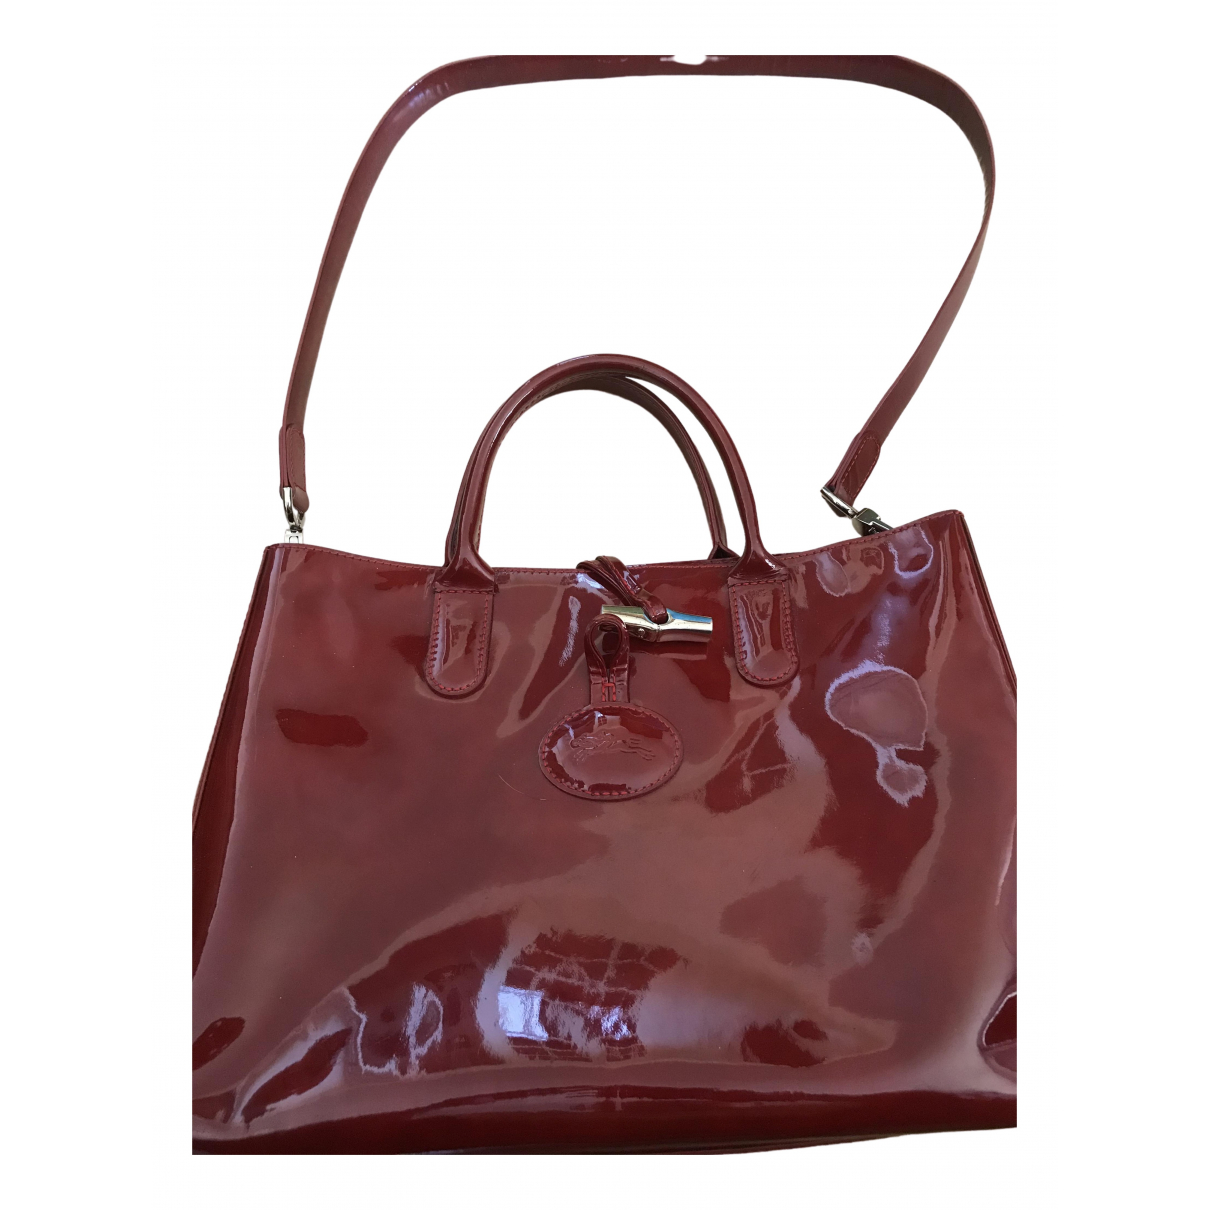 Longchamp Roseau Burgundy Patent leather handbag for Women \N